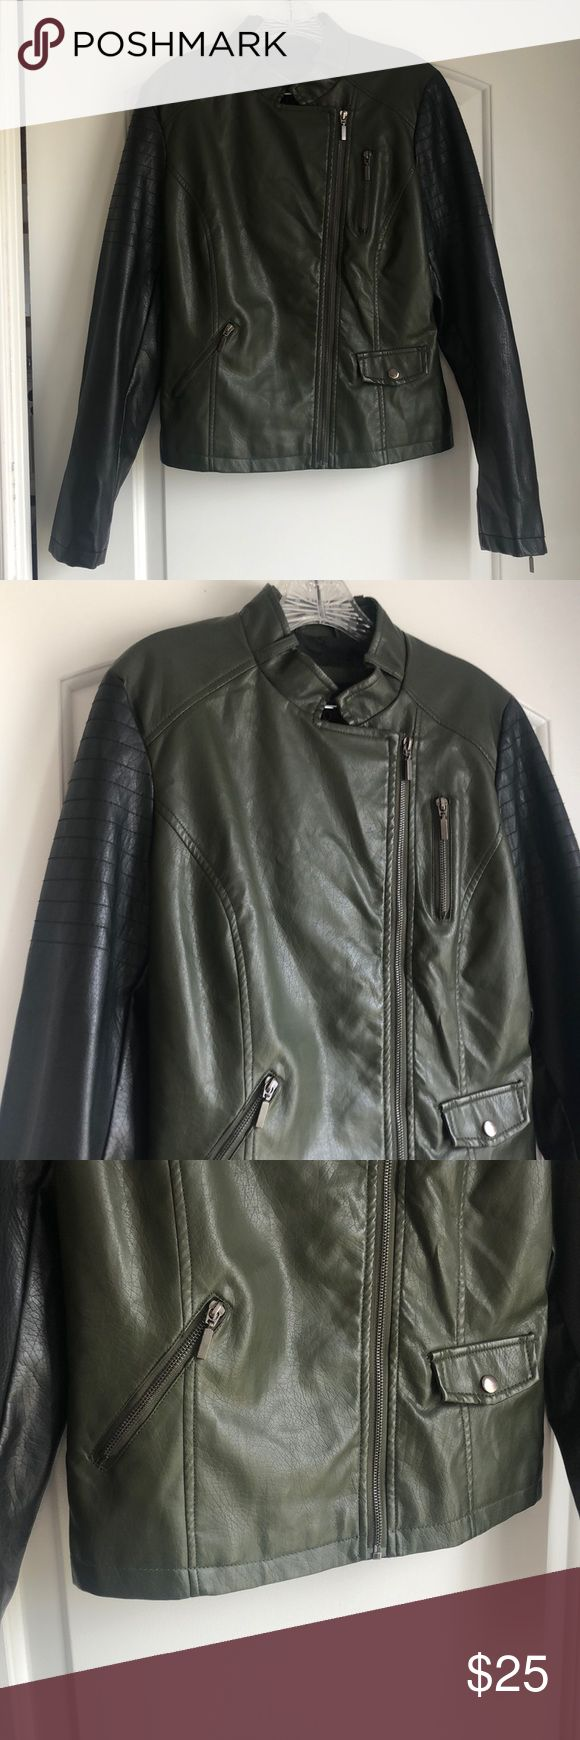 """Army green and black """"leather"""" jacket Brand is yoki Size"""